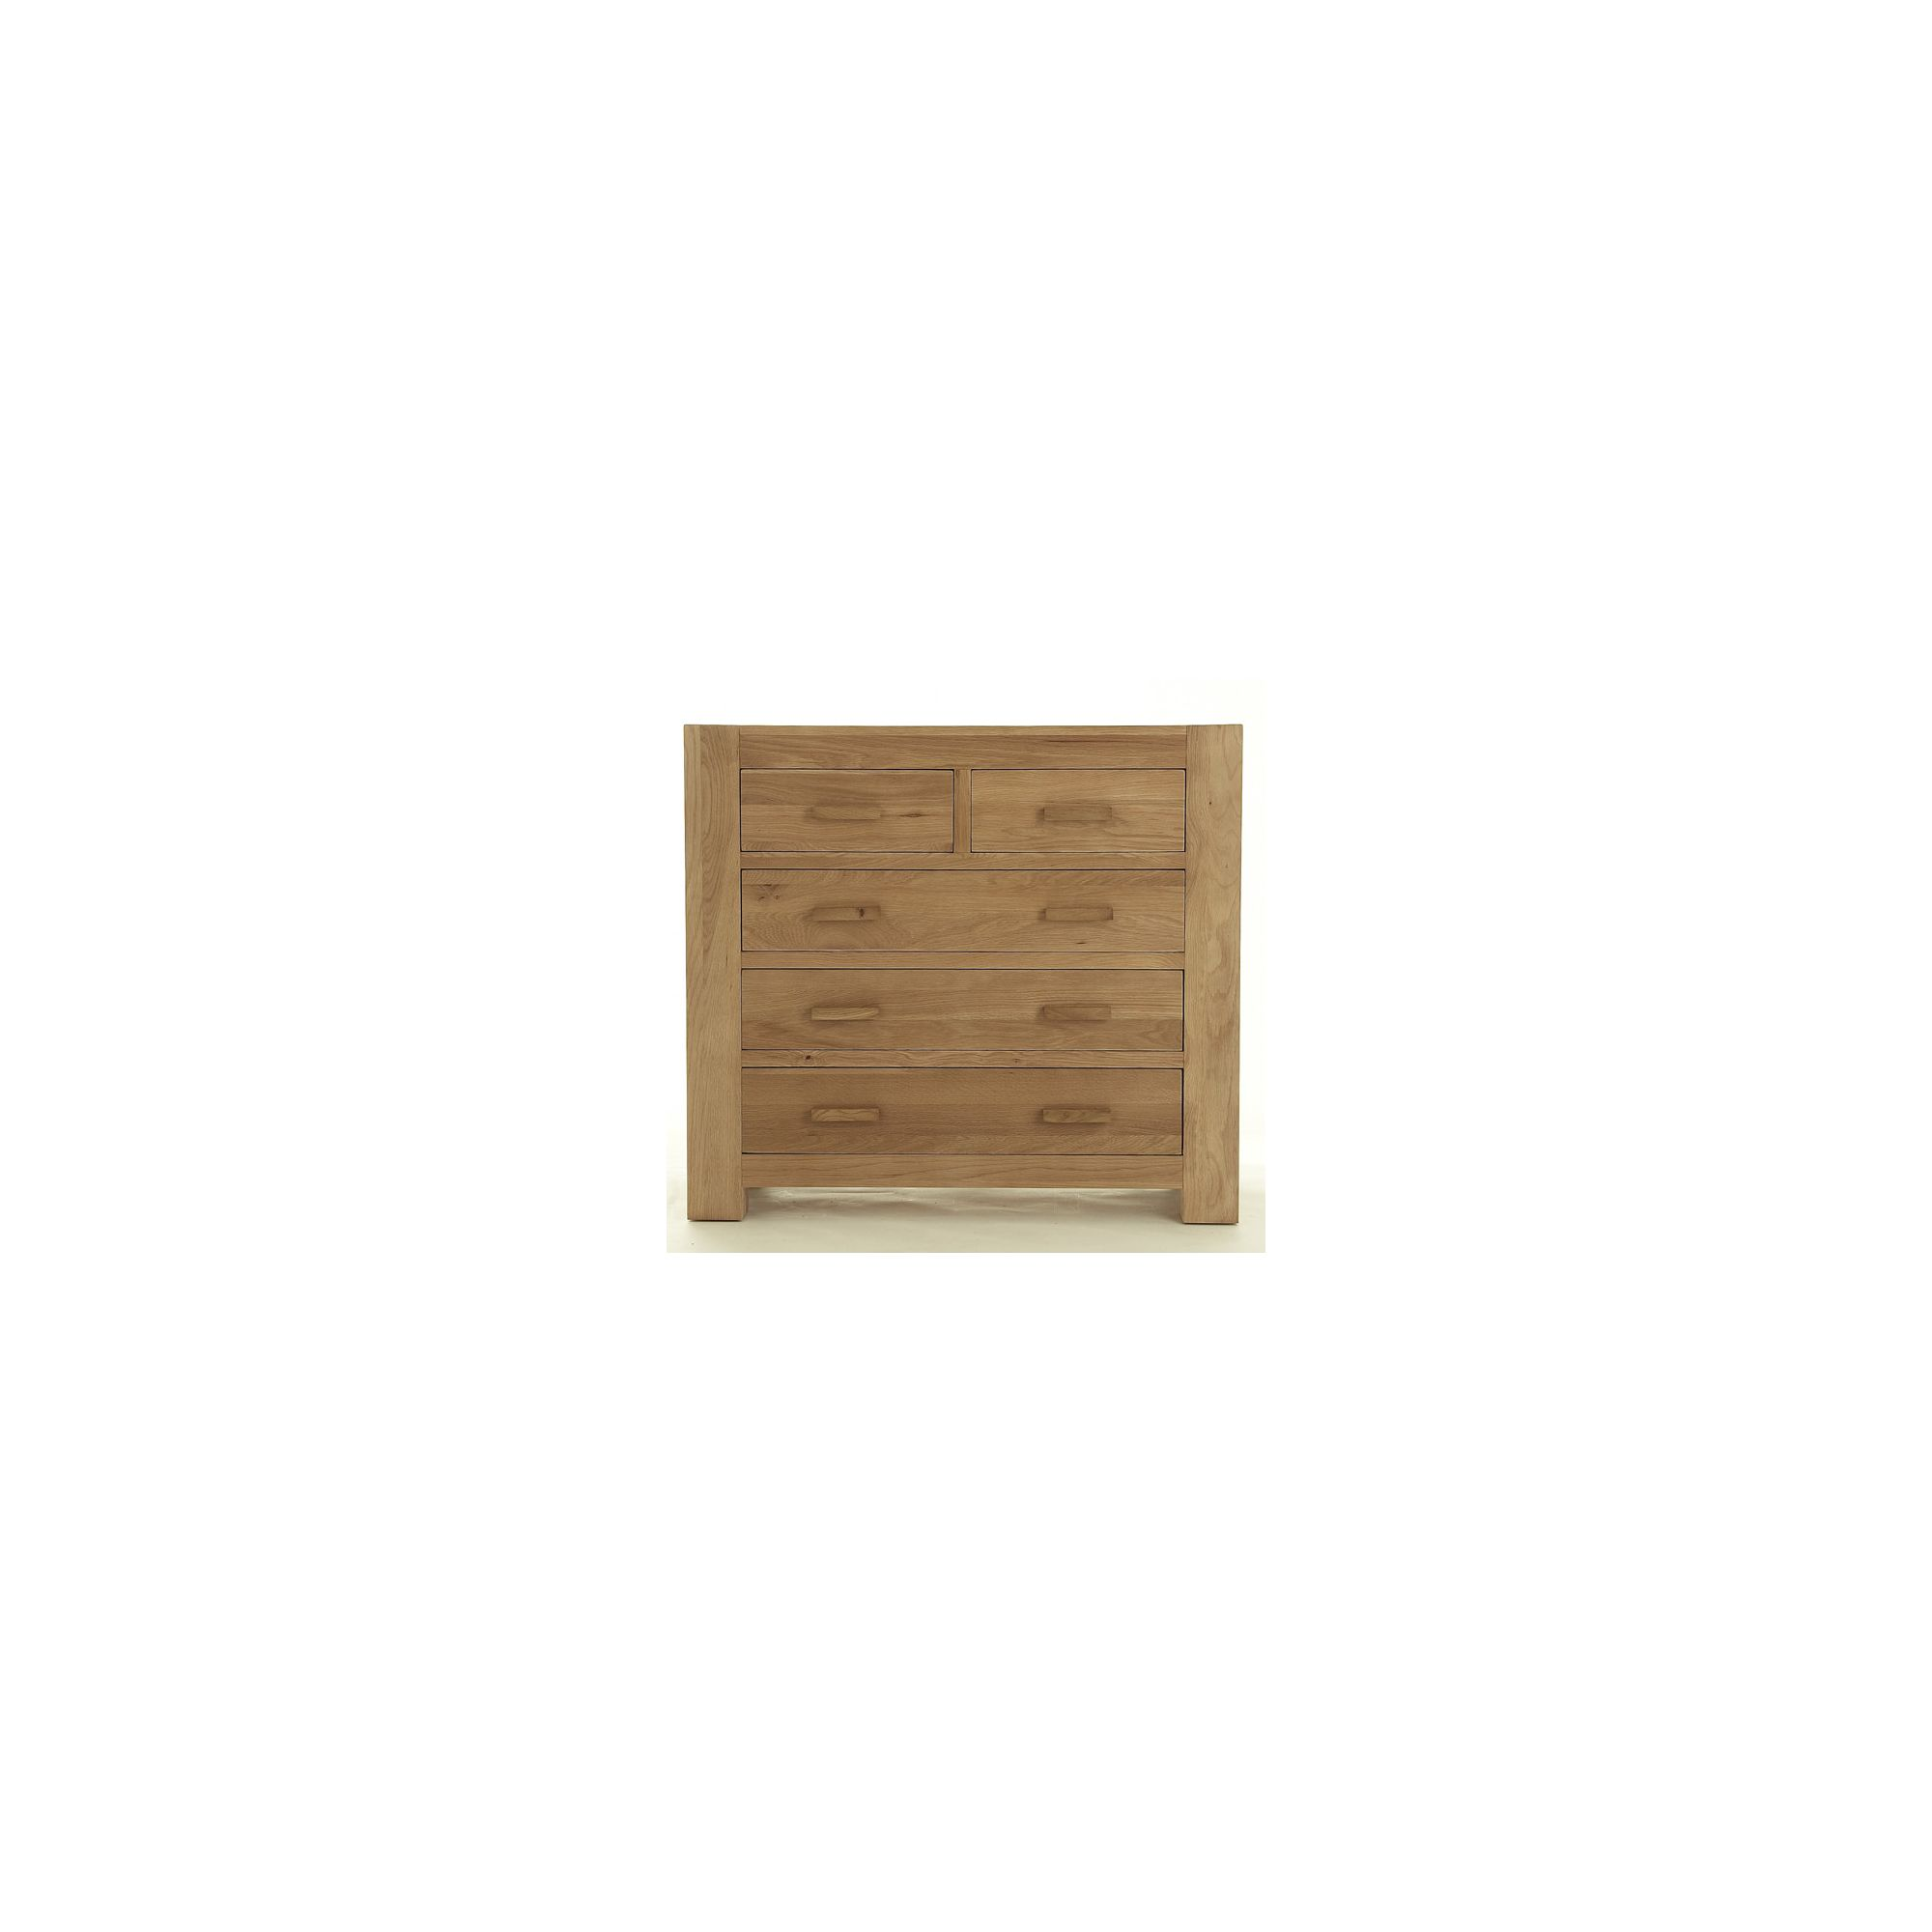 Thorndon Block Bedroom 2 Over 3 Drawer Chest in Natural Matured Oak at Tesco Direct